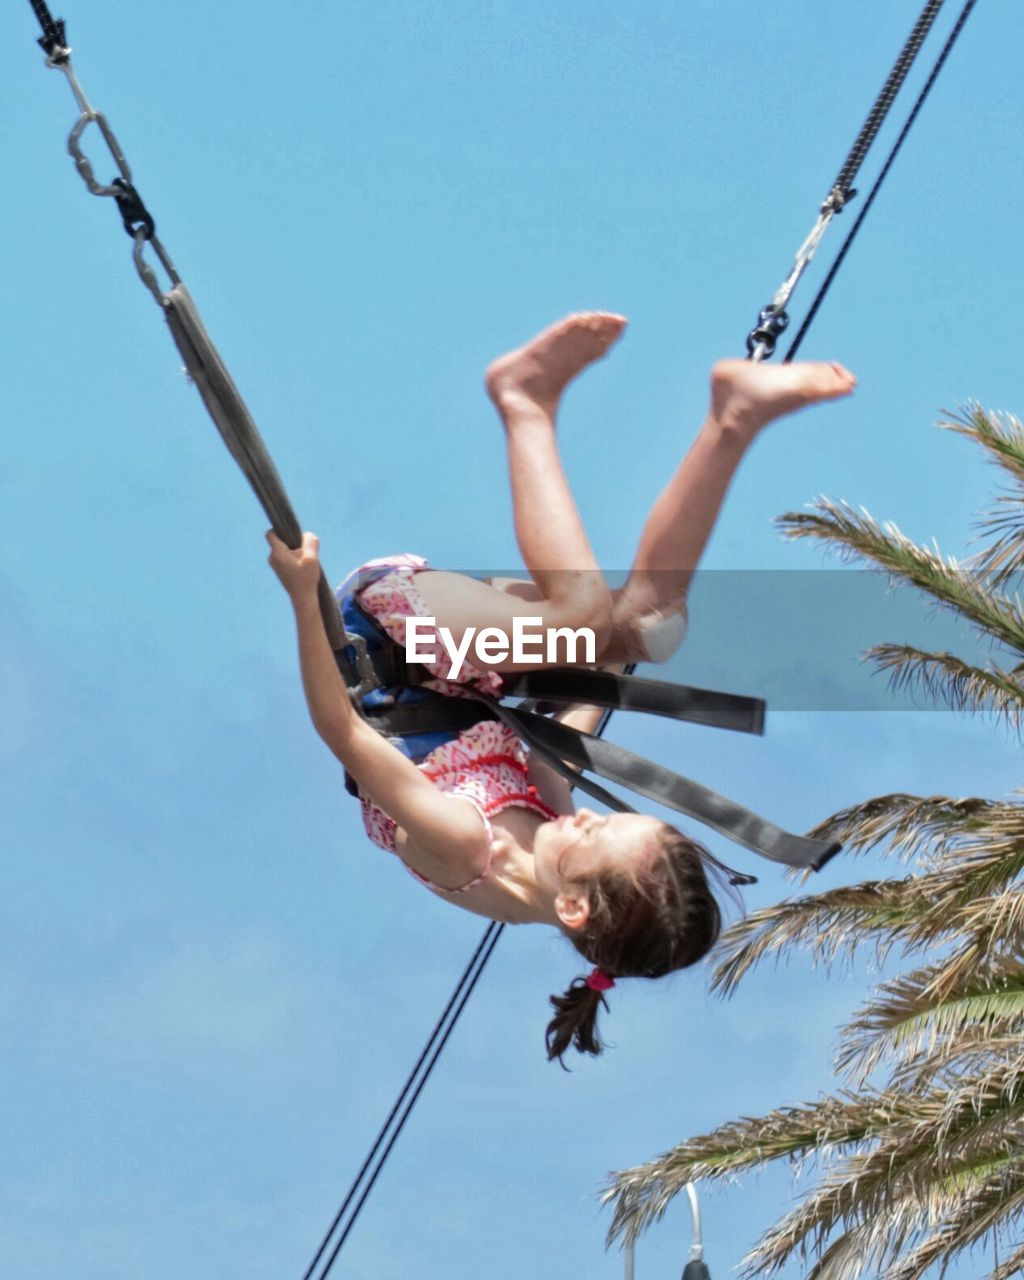 real people, clear sky, low angle view, leisure activity, one person, upside down, full length, day, outdoors, risk, mid-air, lifestyles, skill, sky, acrobat, tree, extreme sports, rope swing, acrobatic activity, nature, beauty in nature, young adult, people